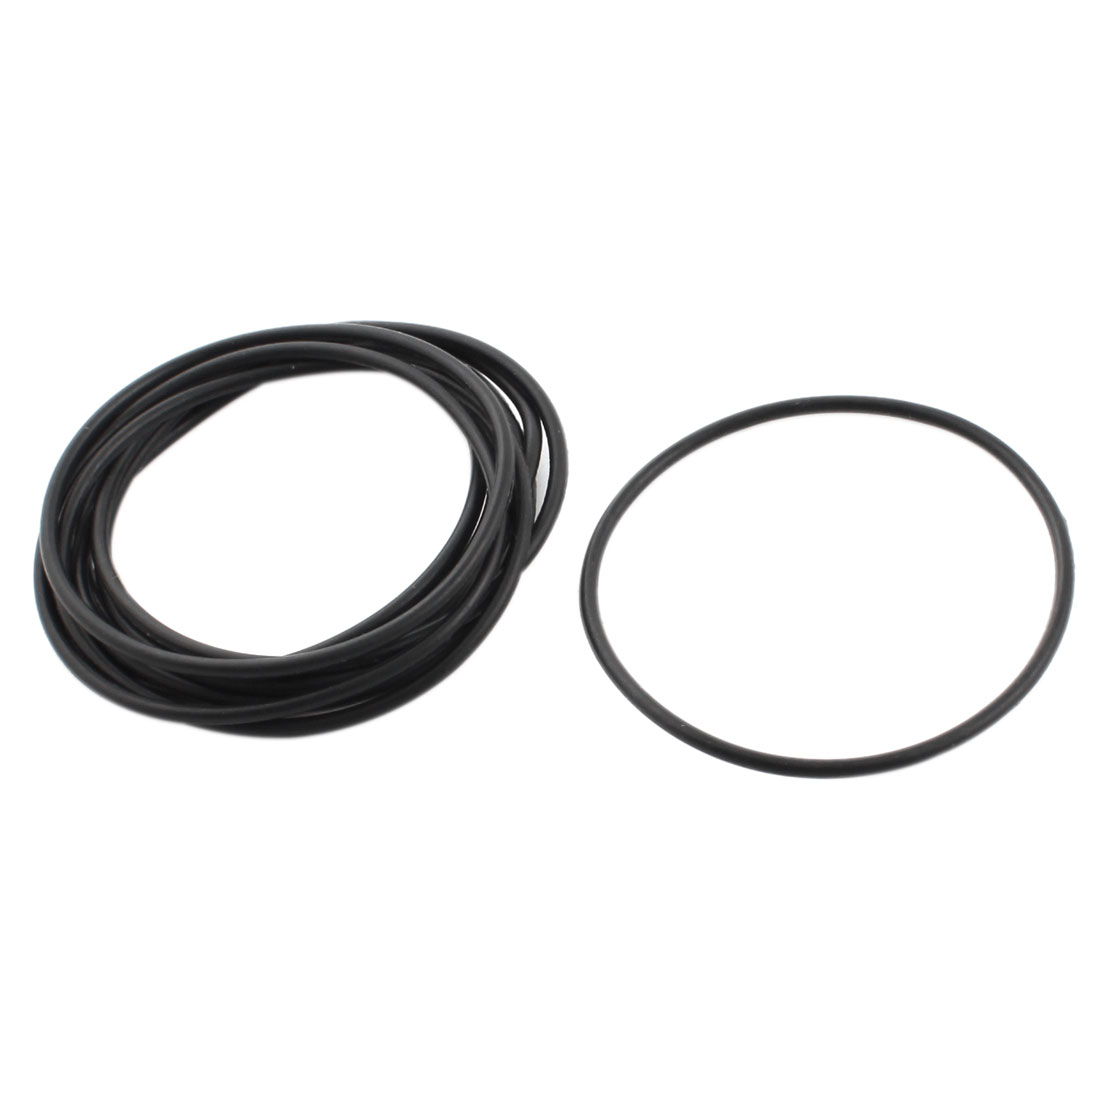 10pcs 60mm Outside Dia Rubber Washers O Ring Oil Seal Gaskets Black